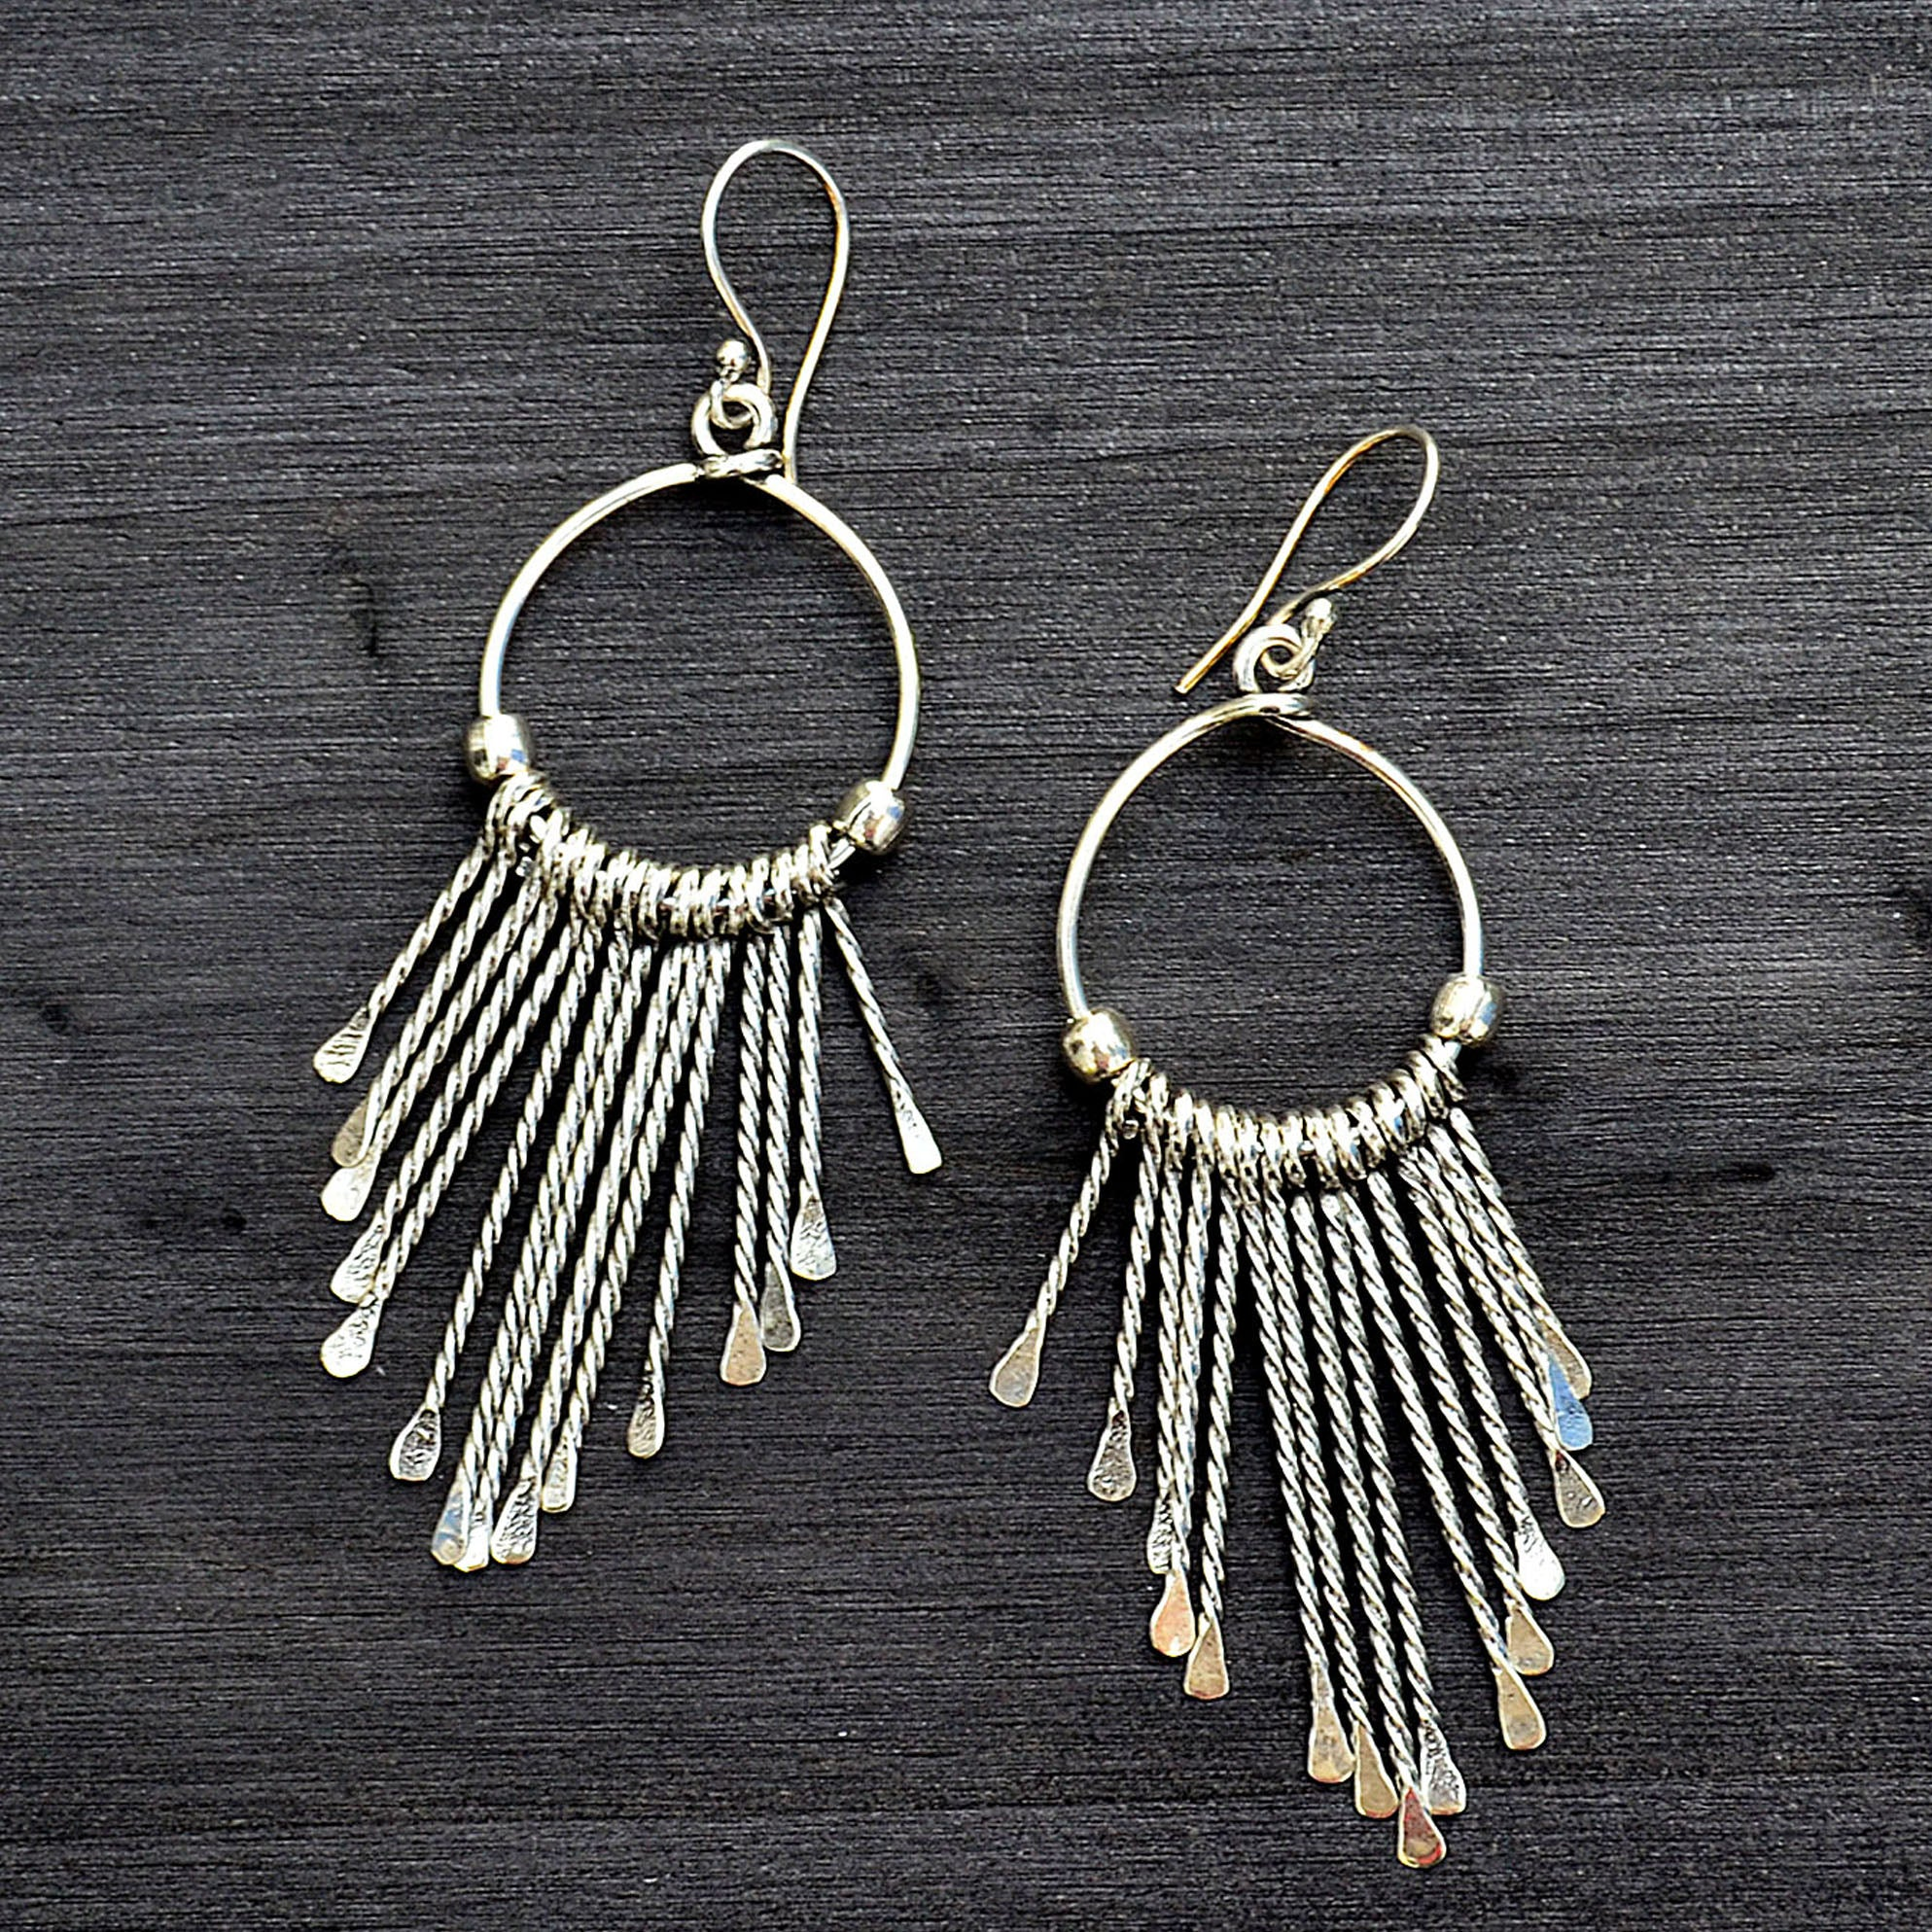 Hanging ear hoops